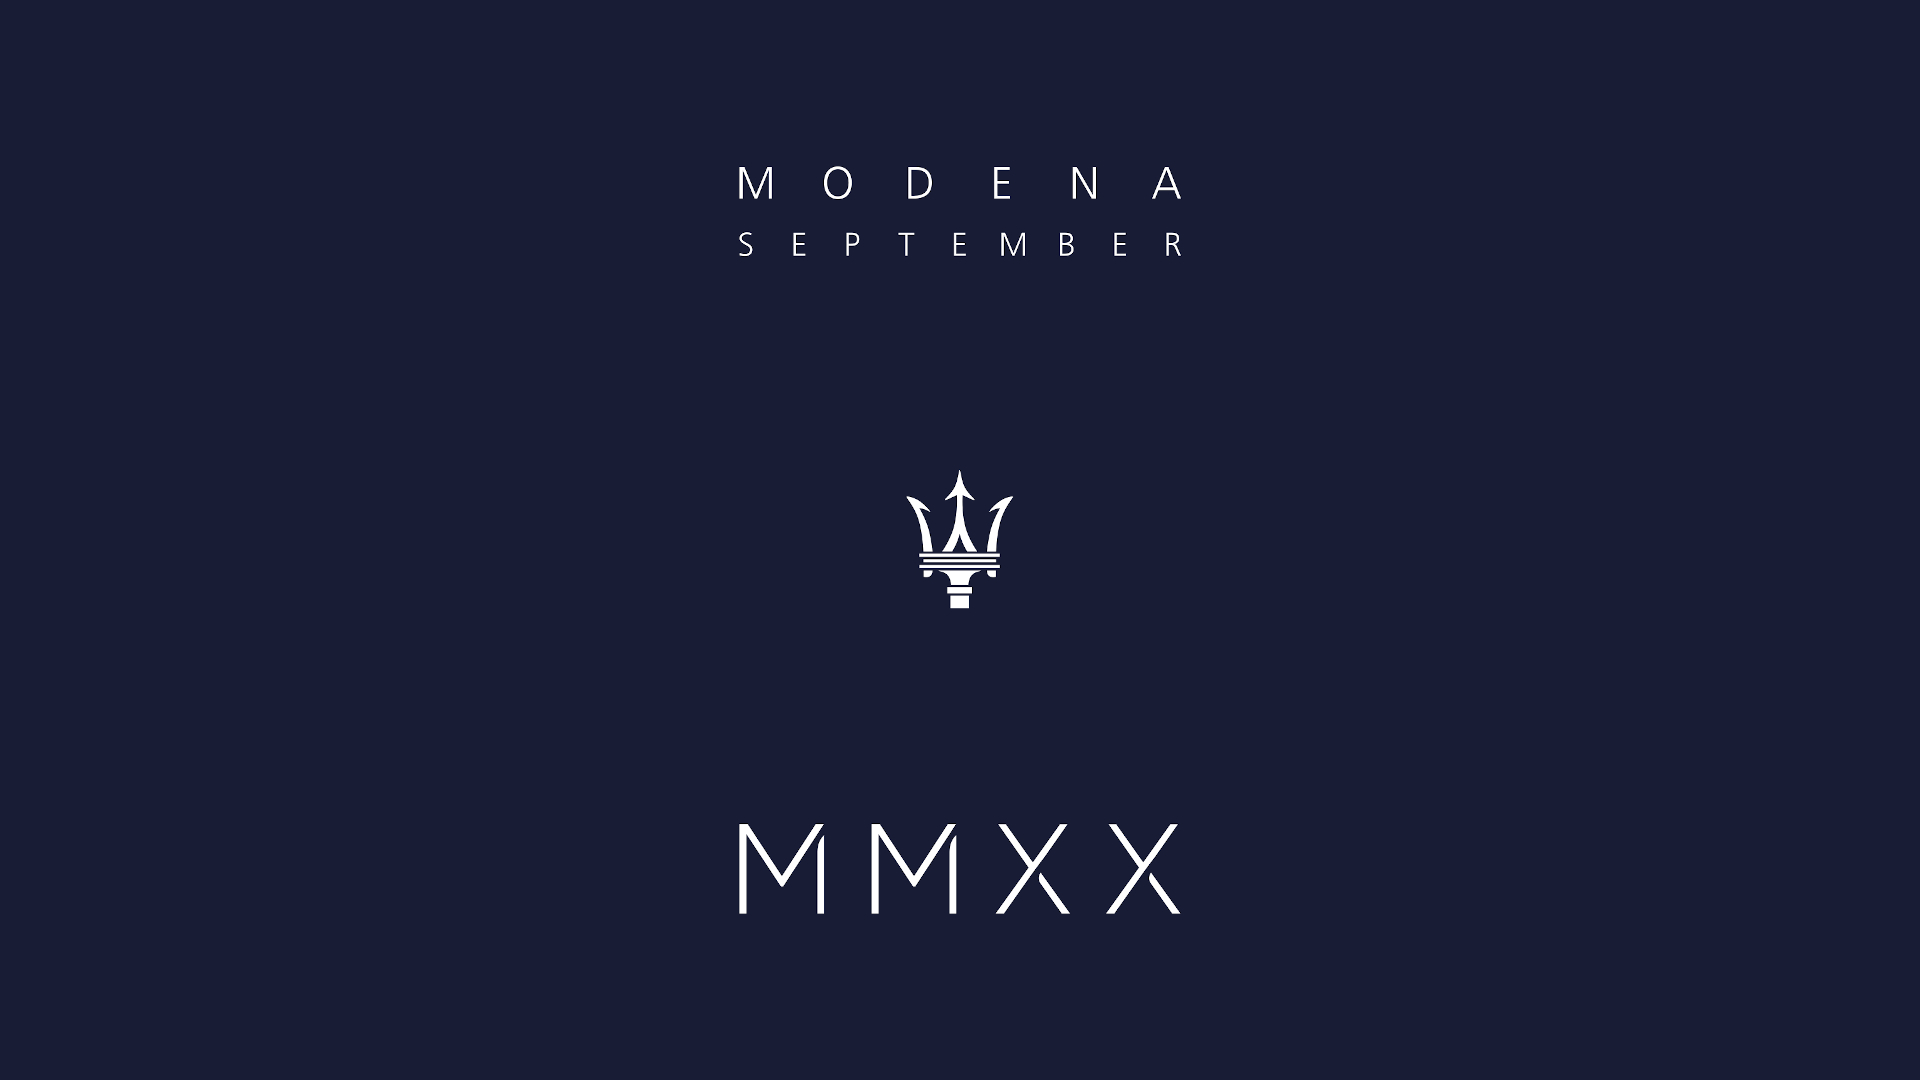 Maserati MMXX – concept and identity for the start of a new era.